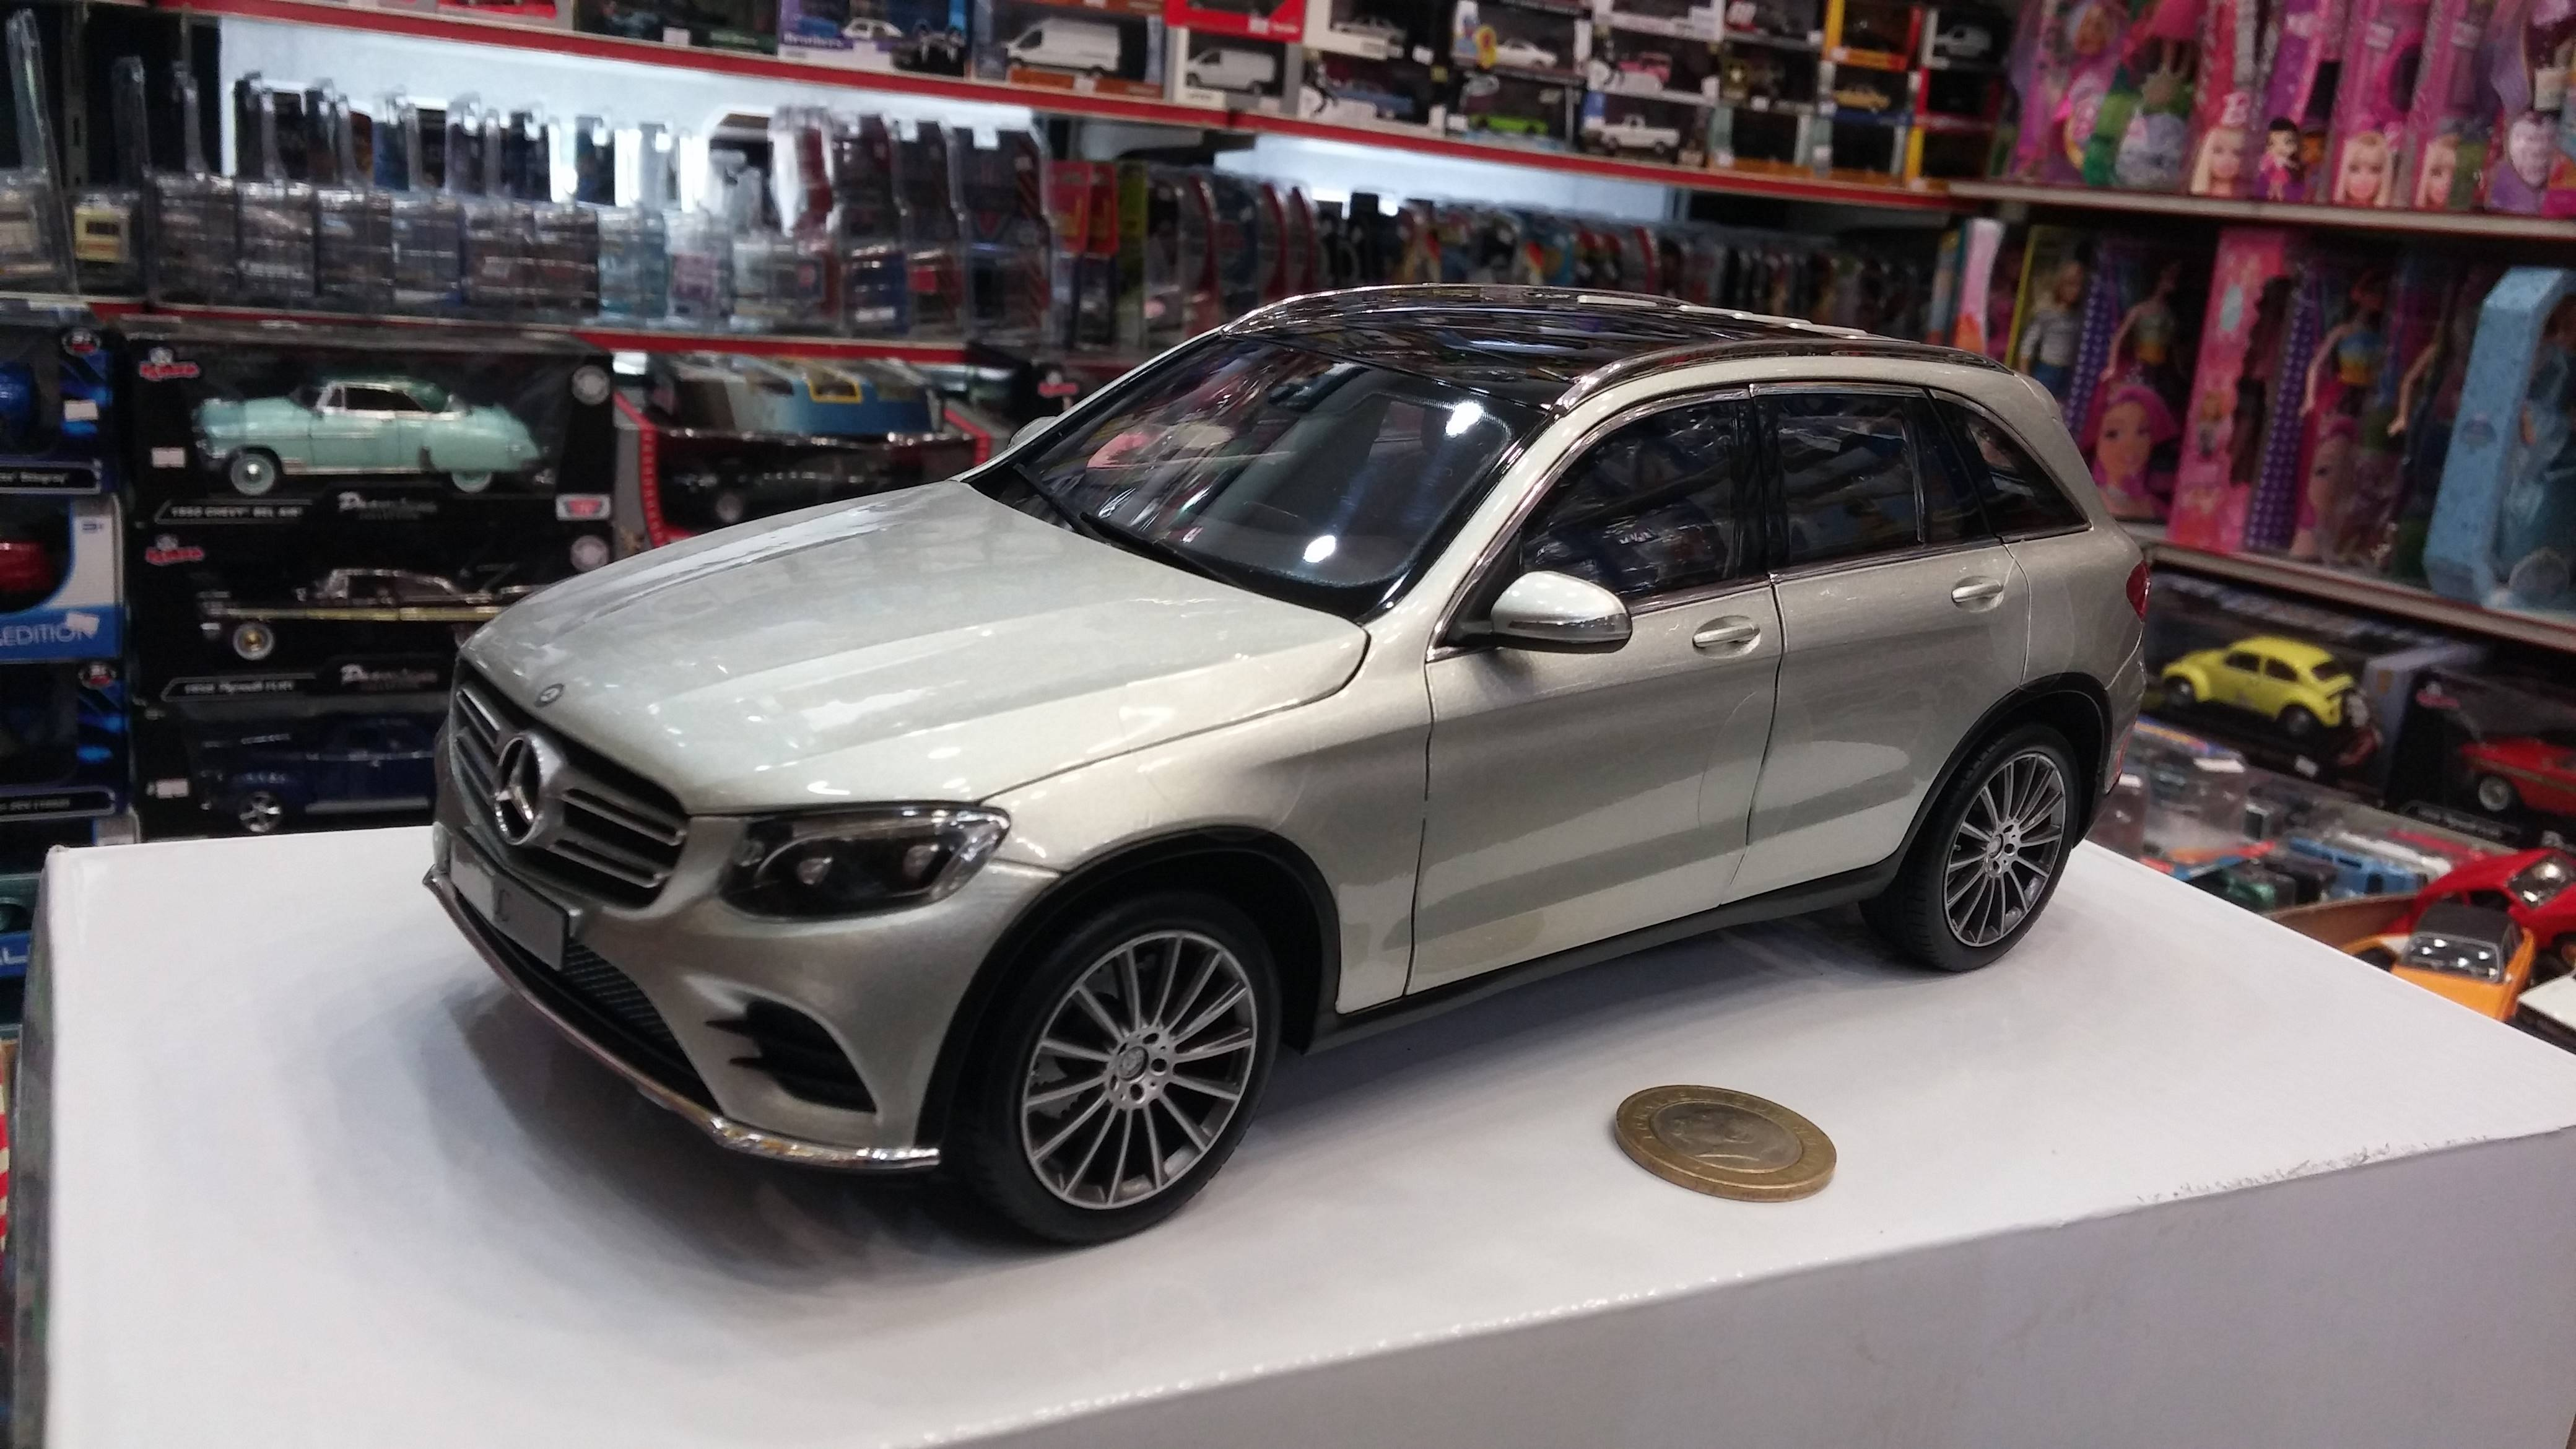 Mercedes GLC-Class (X253) suv photo